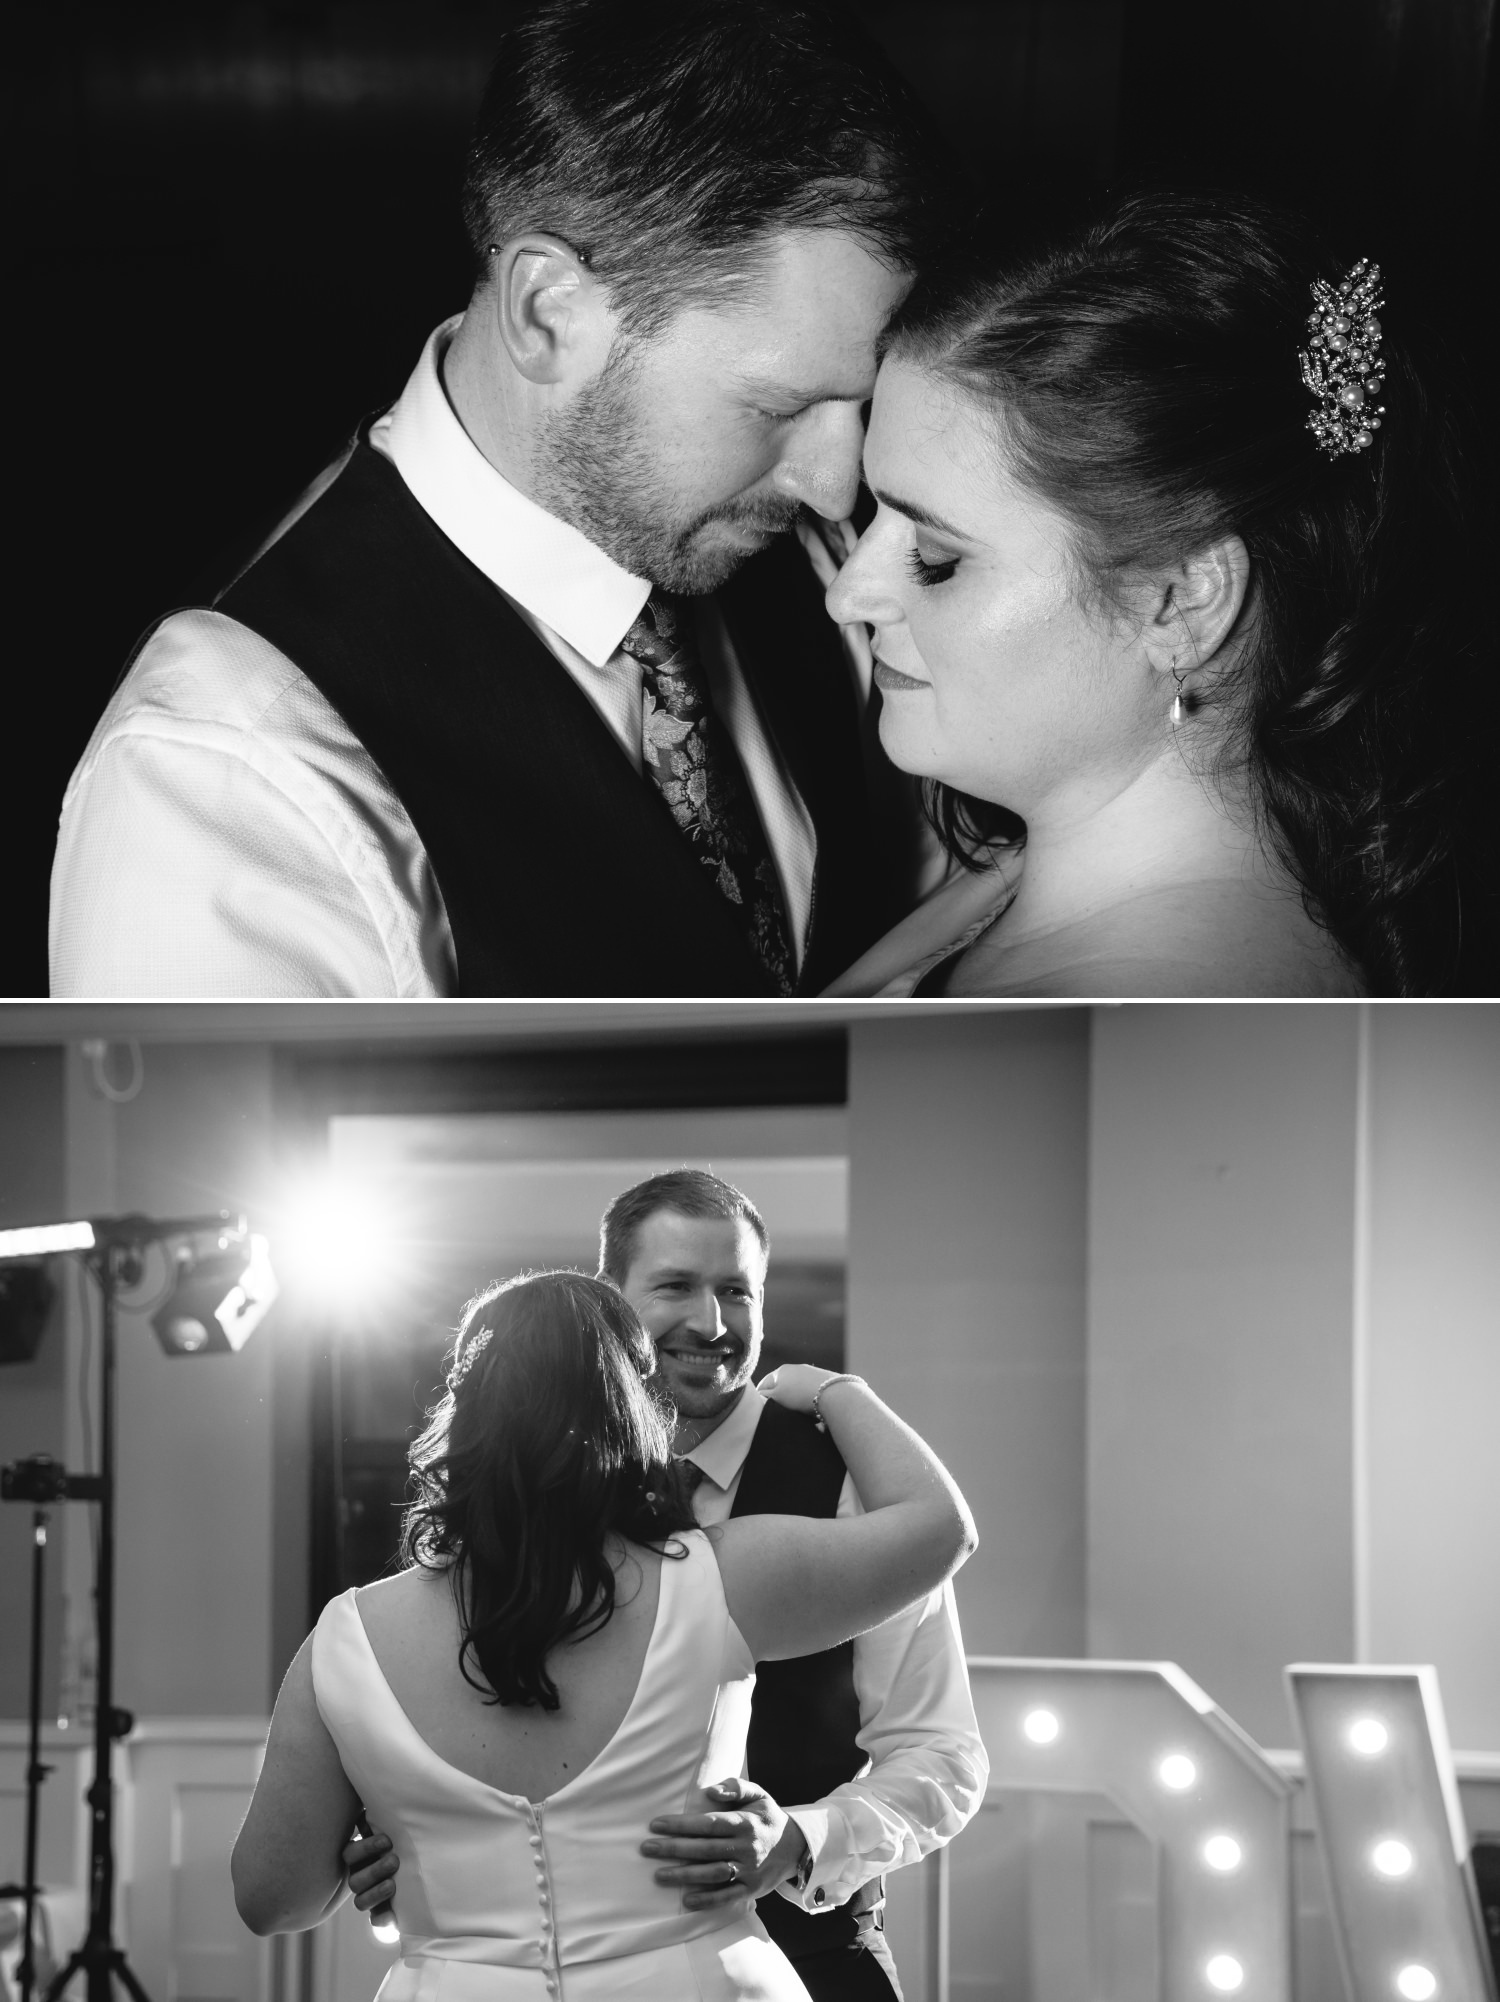 Wedding Photograph black and white portrait in Quay Hotel, North Wales